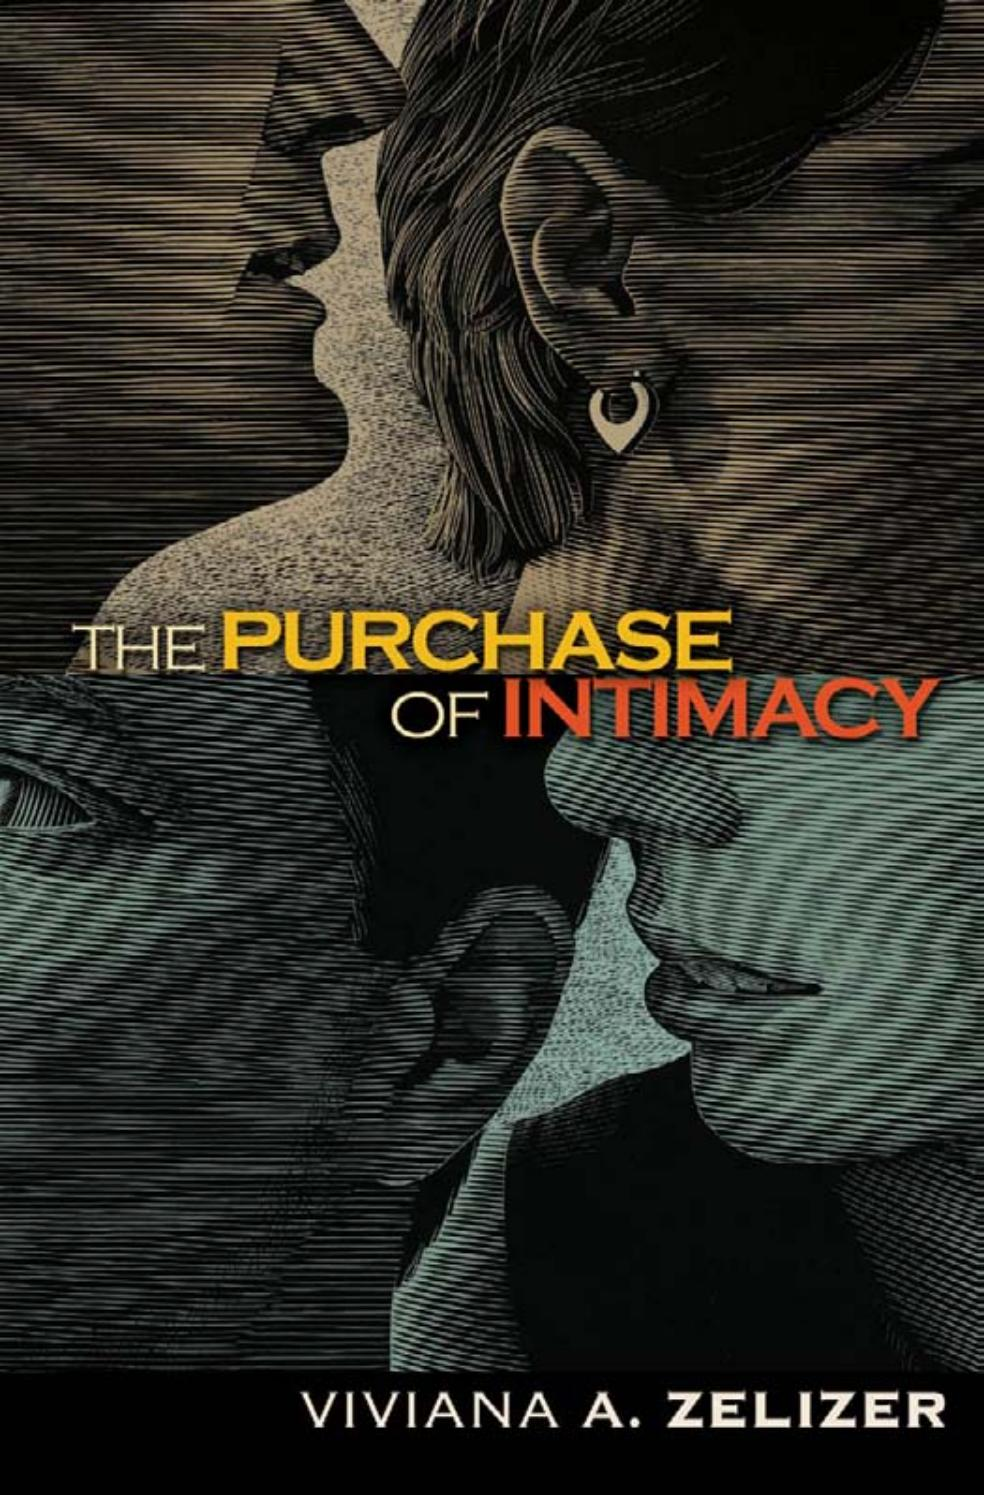 viviana a zelizer] the purchase of intimacy by mark - issuu on